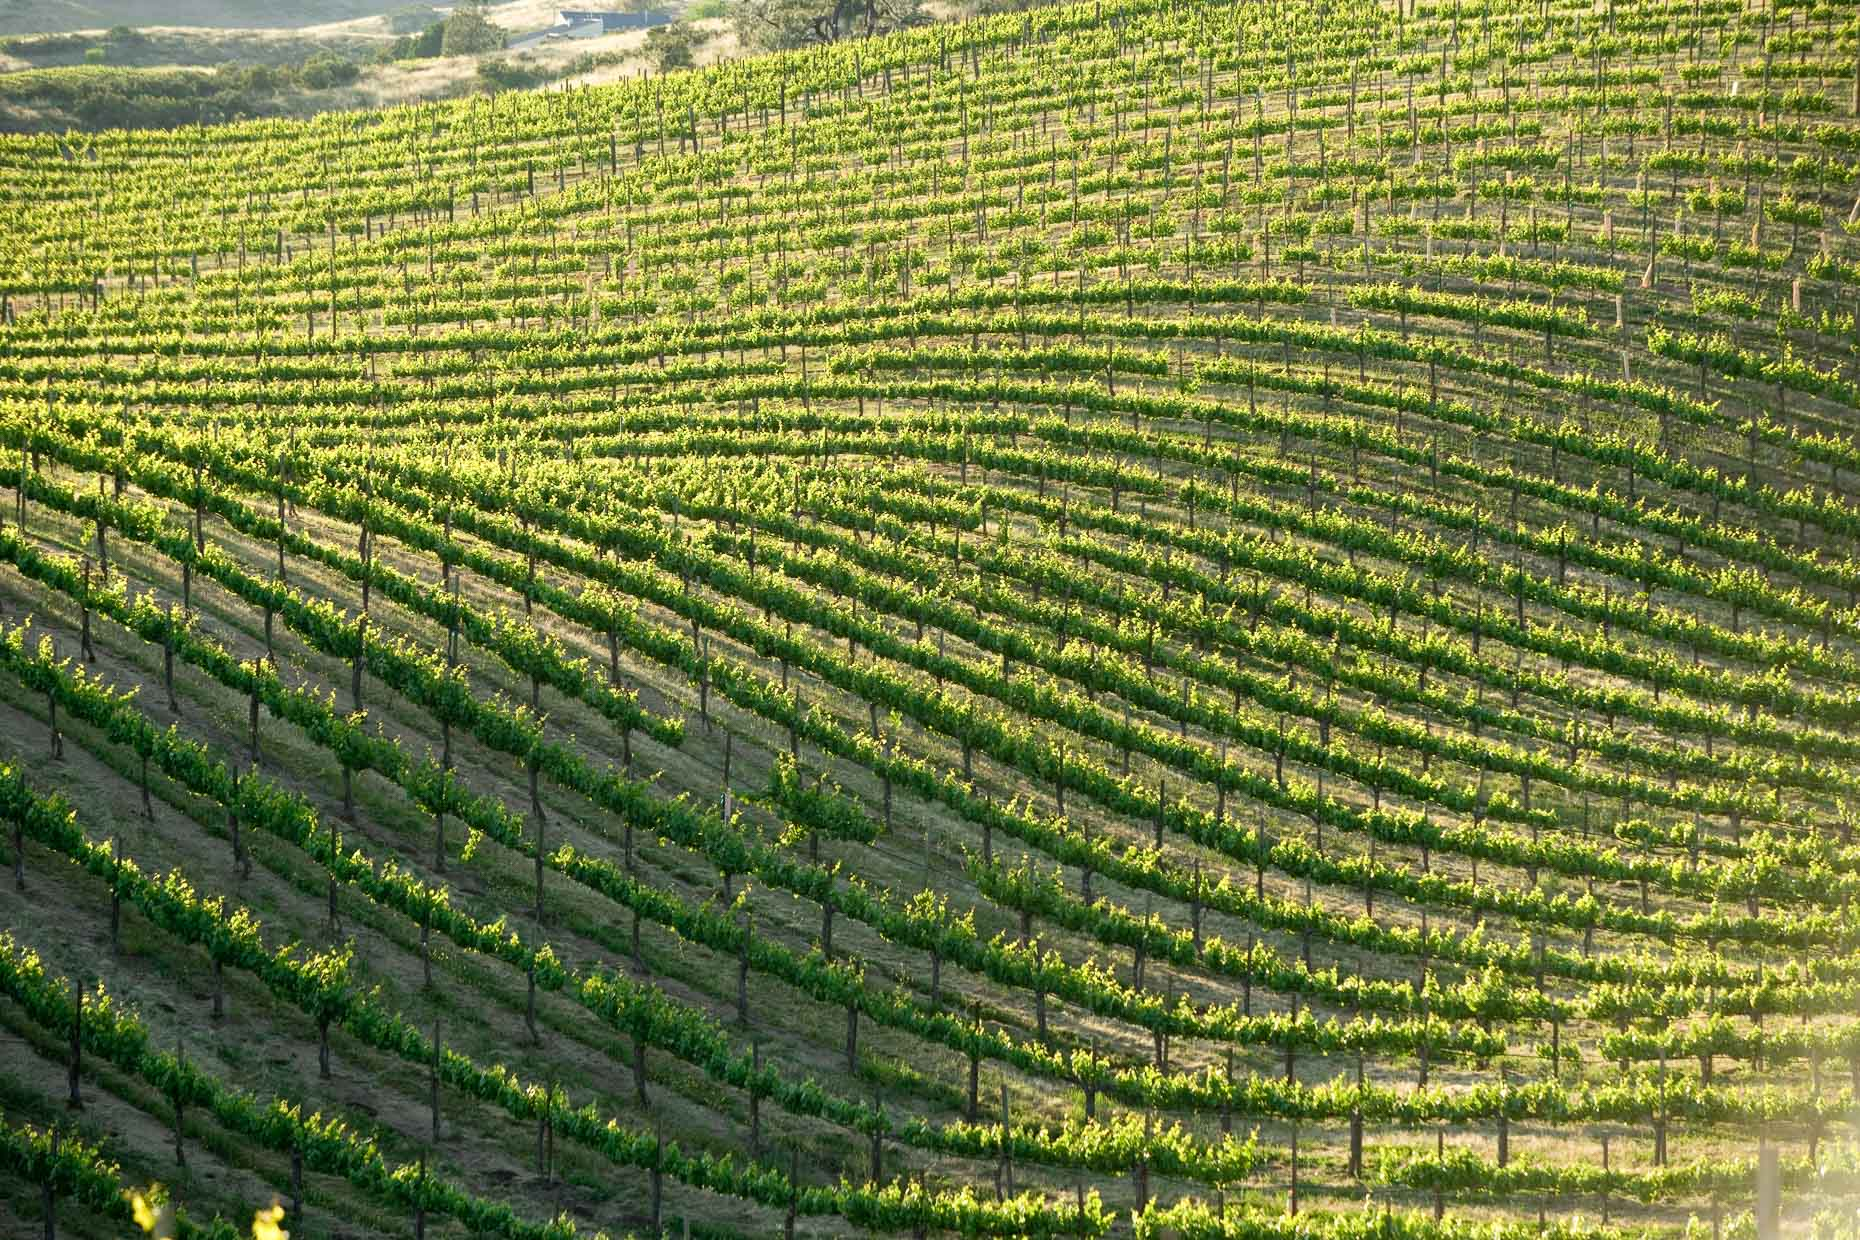 Rows of grape vines in vineyard in Soledad, California by David Zaitz